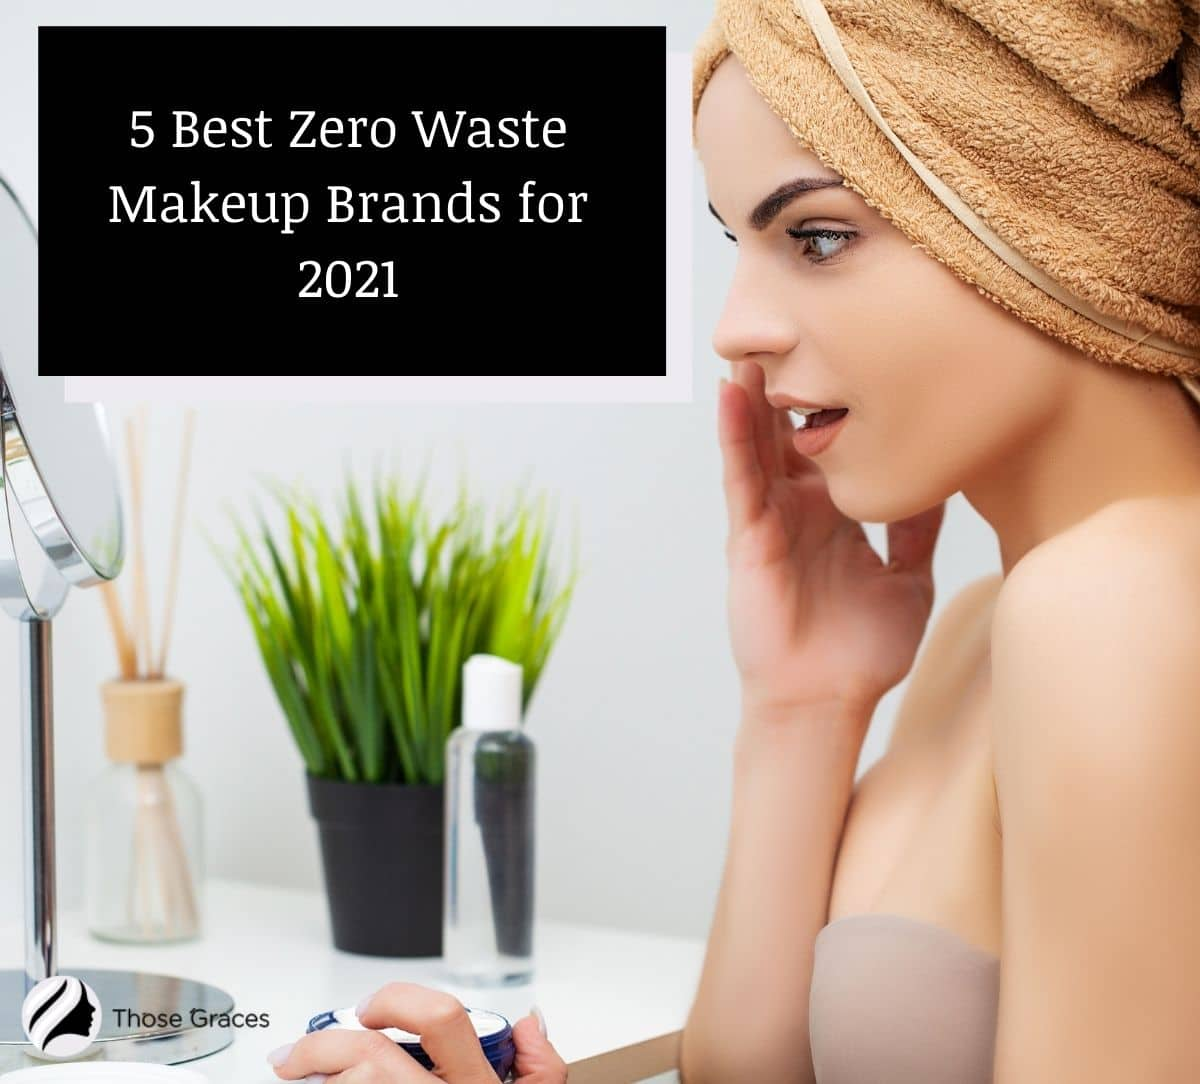 a lady amazed by the result of using zero waste makeup products on her face